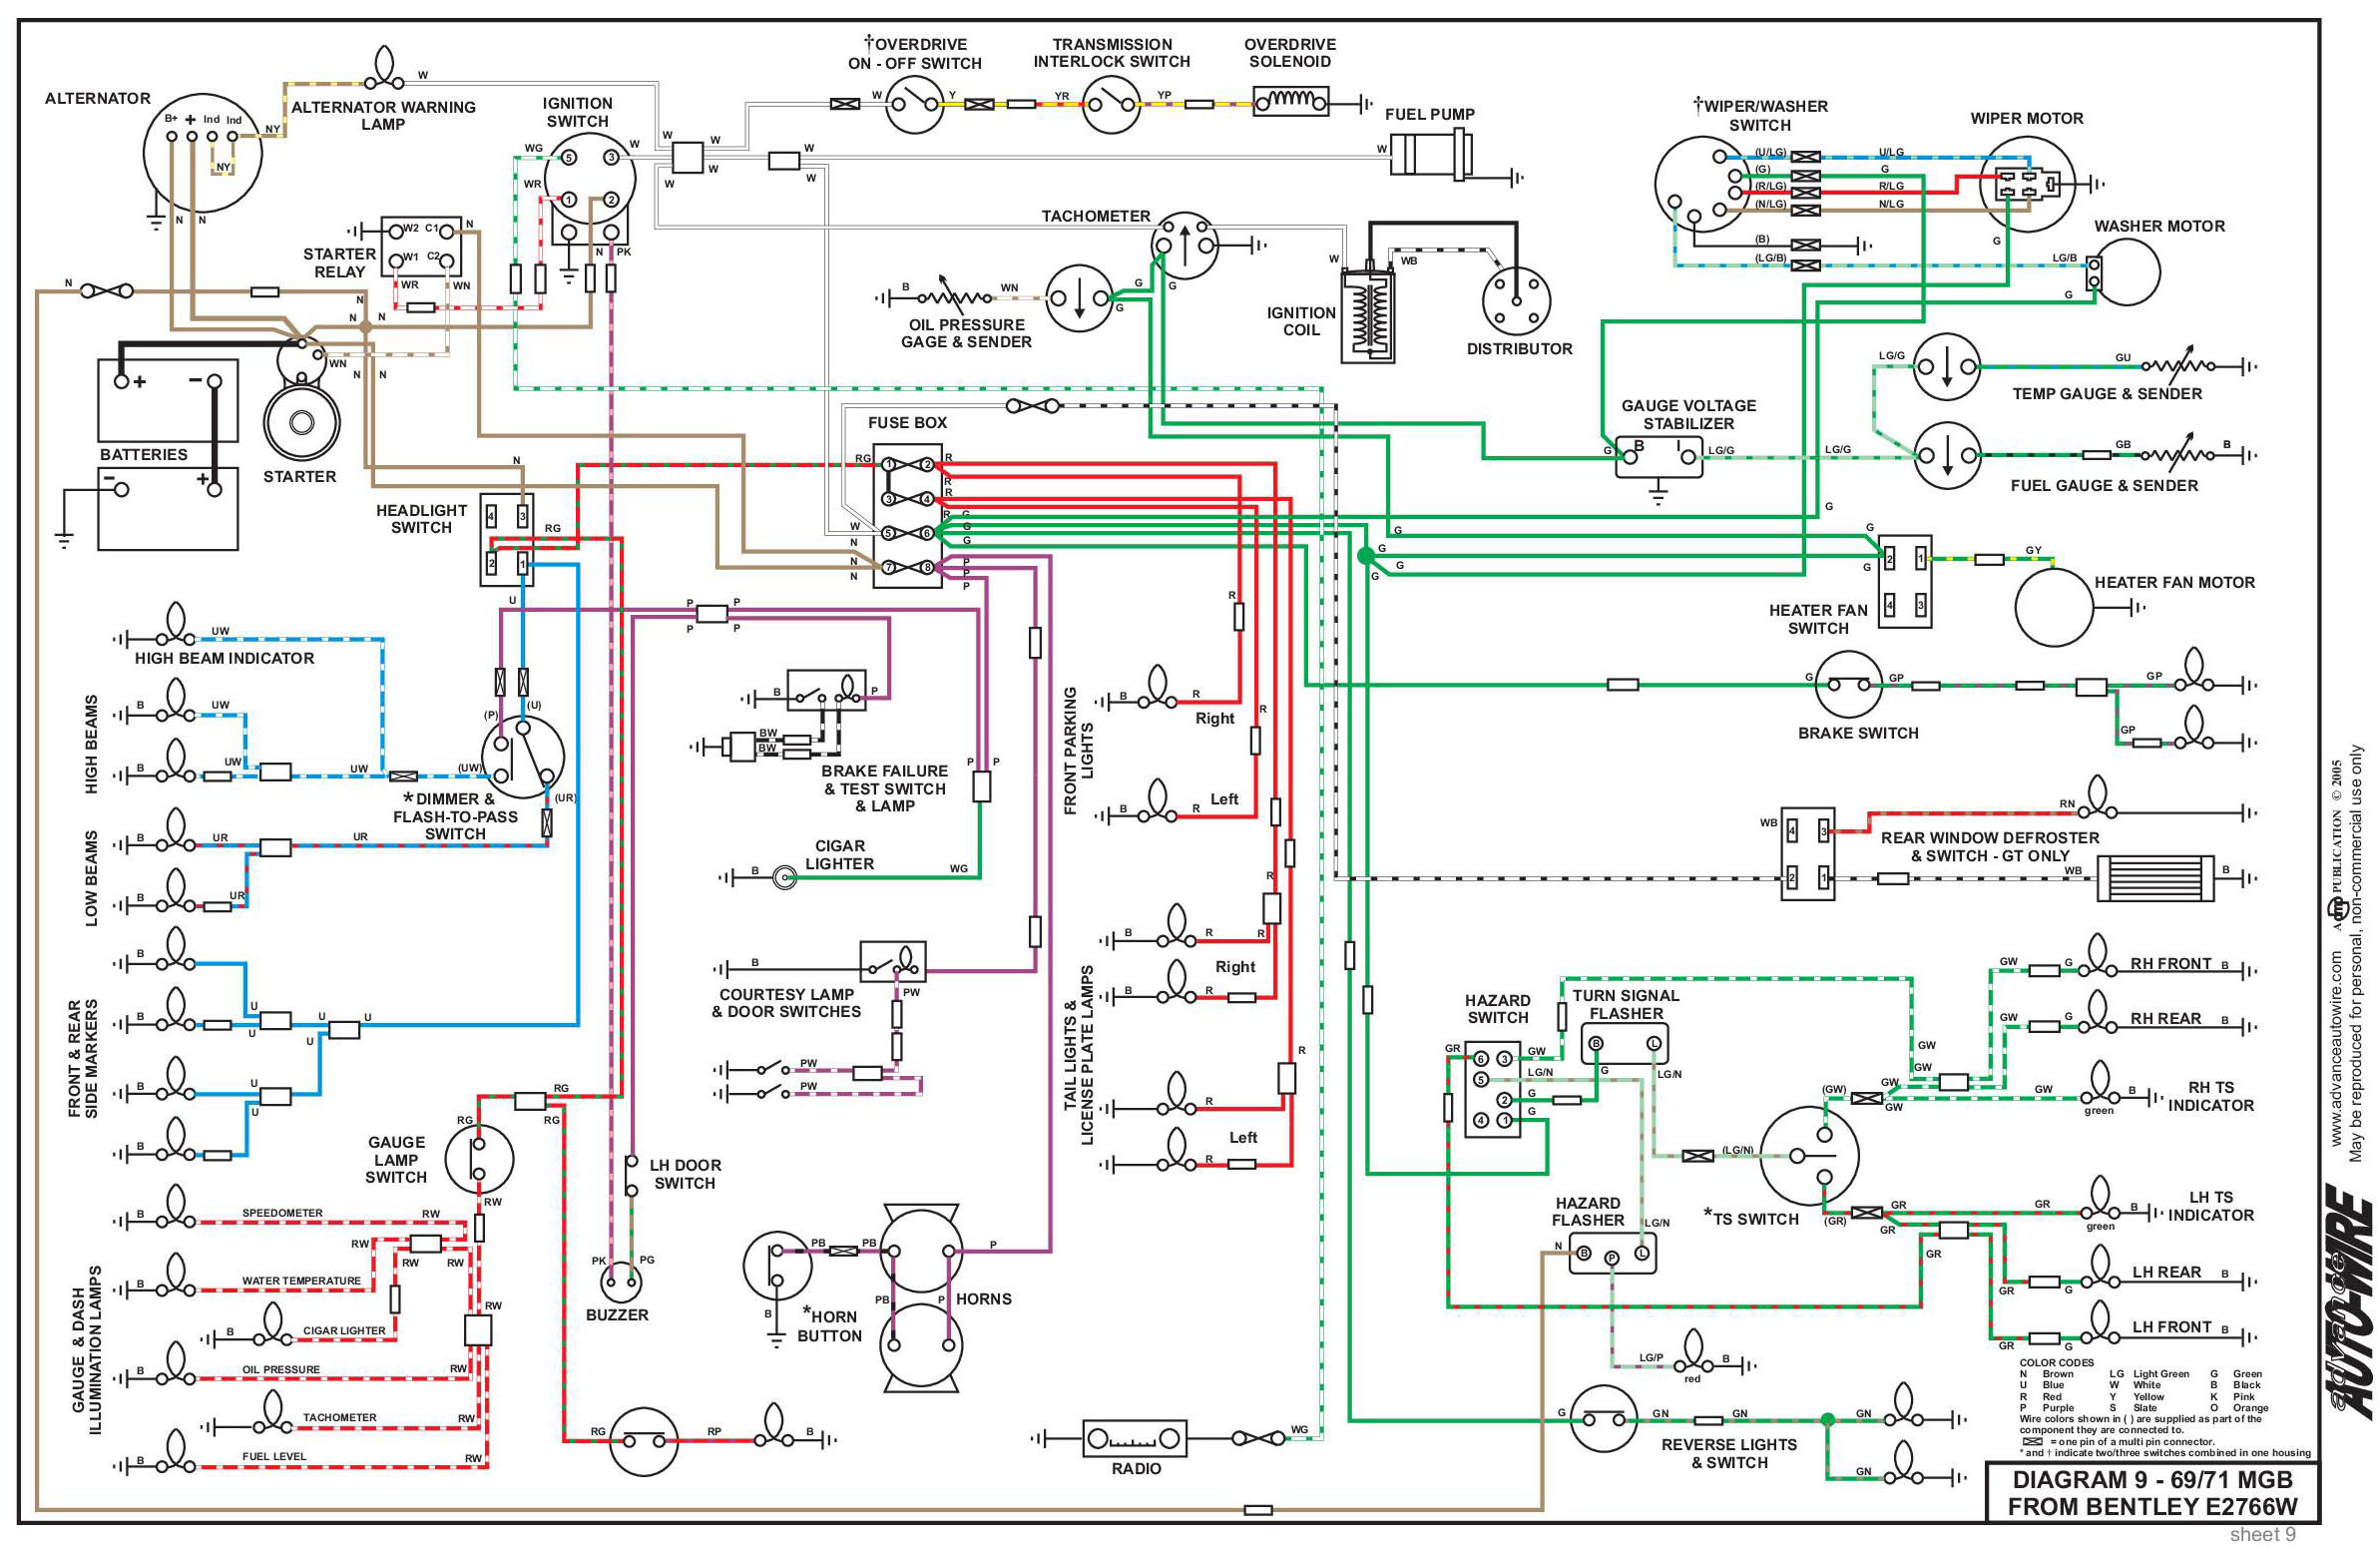 Electrical System Single Headlight Schematic Click Image For Larger View 69 70 Mgb